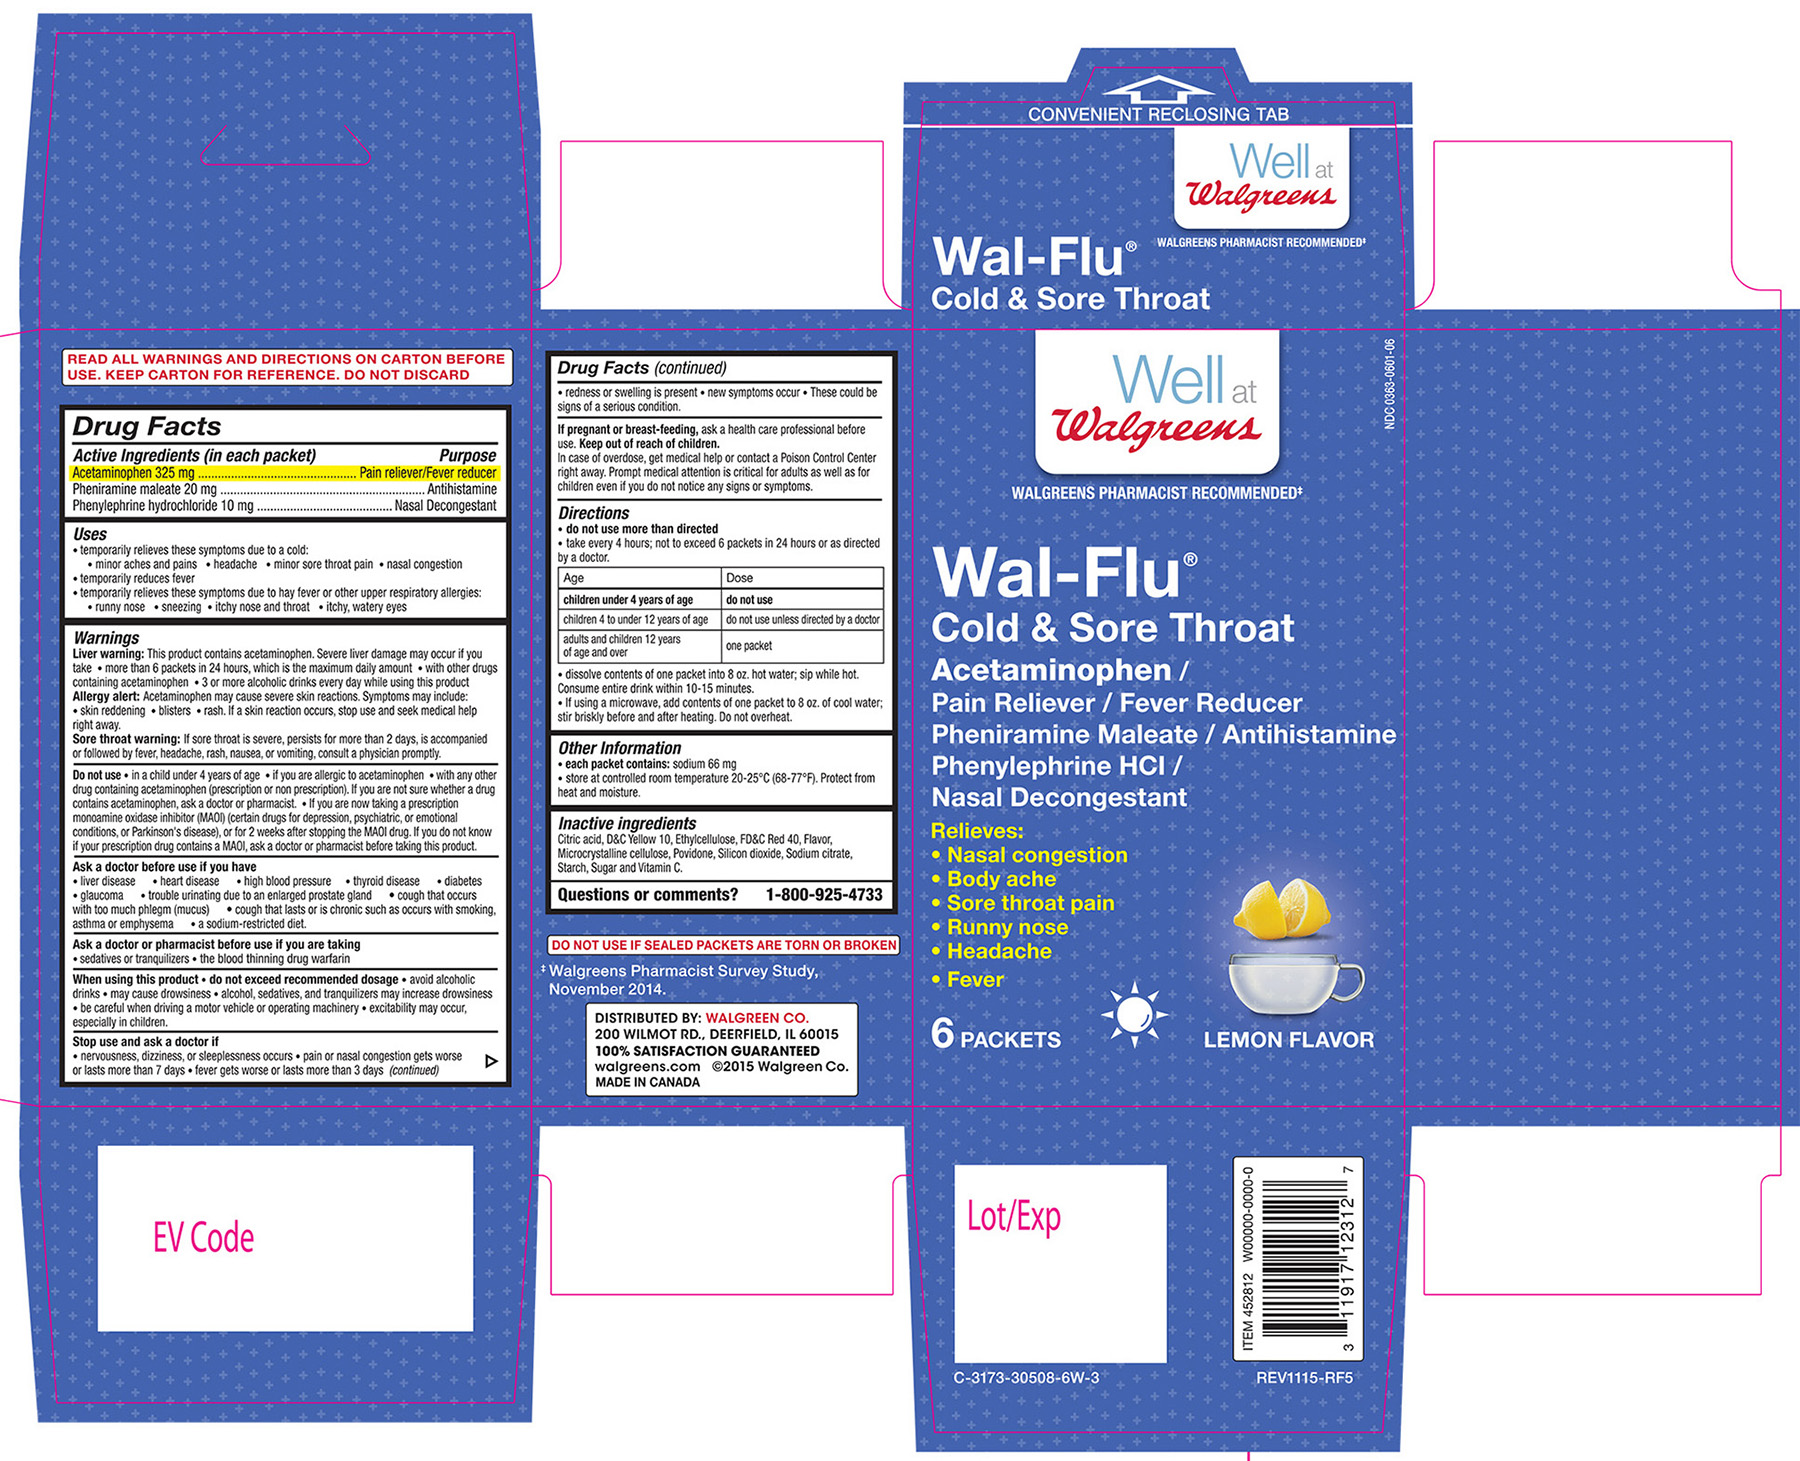 Walgreens Wal-flu Cold And Sore Throat Lemon Flavor (Acetaminophen, Pheniramine Maleate, Phenylephrine Hcl) Granule, For Solution [Walgreen Co.]